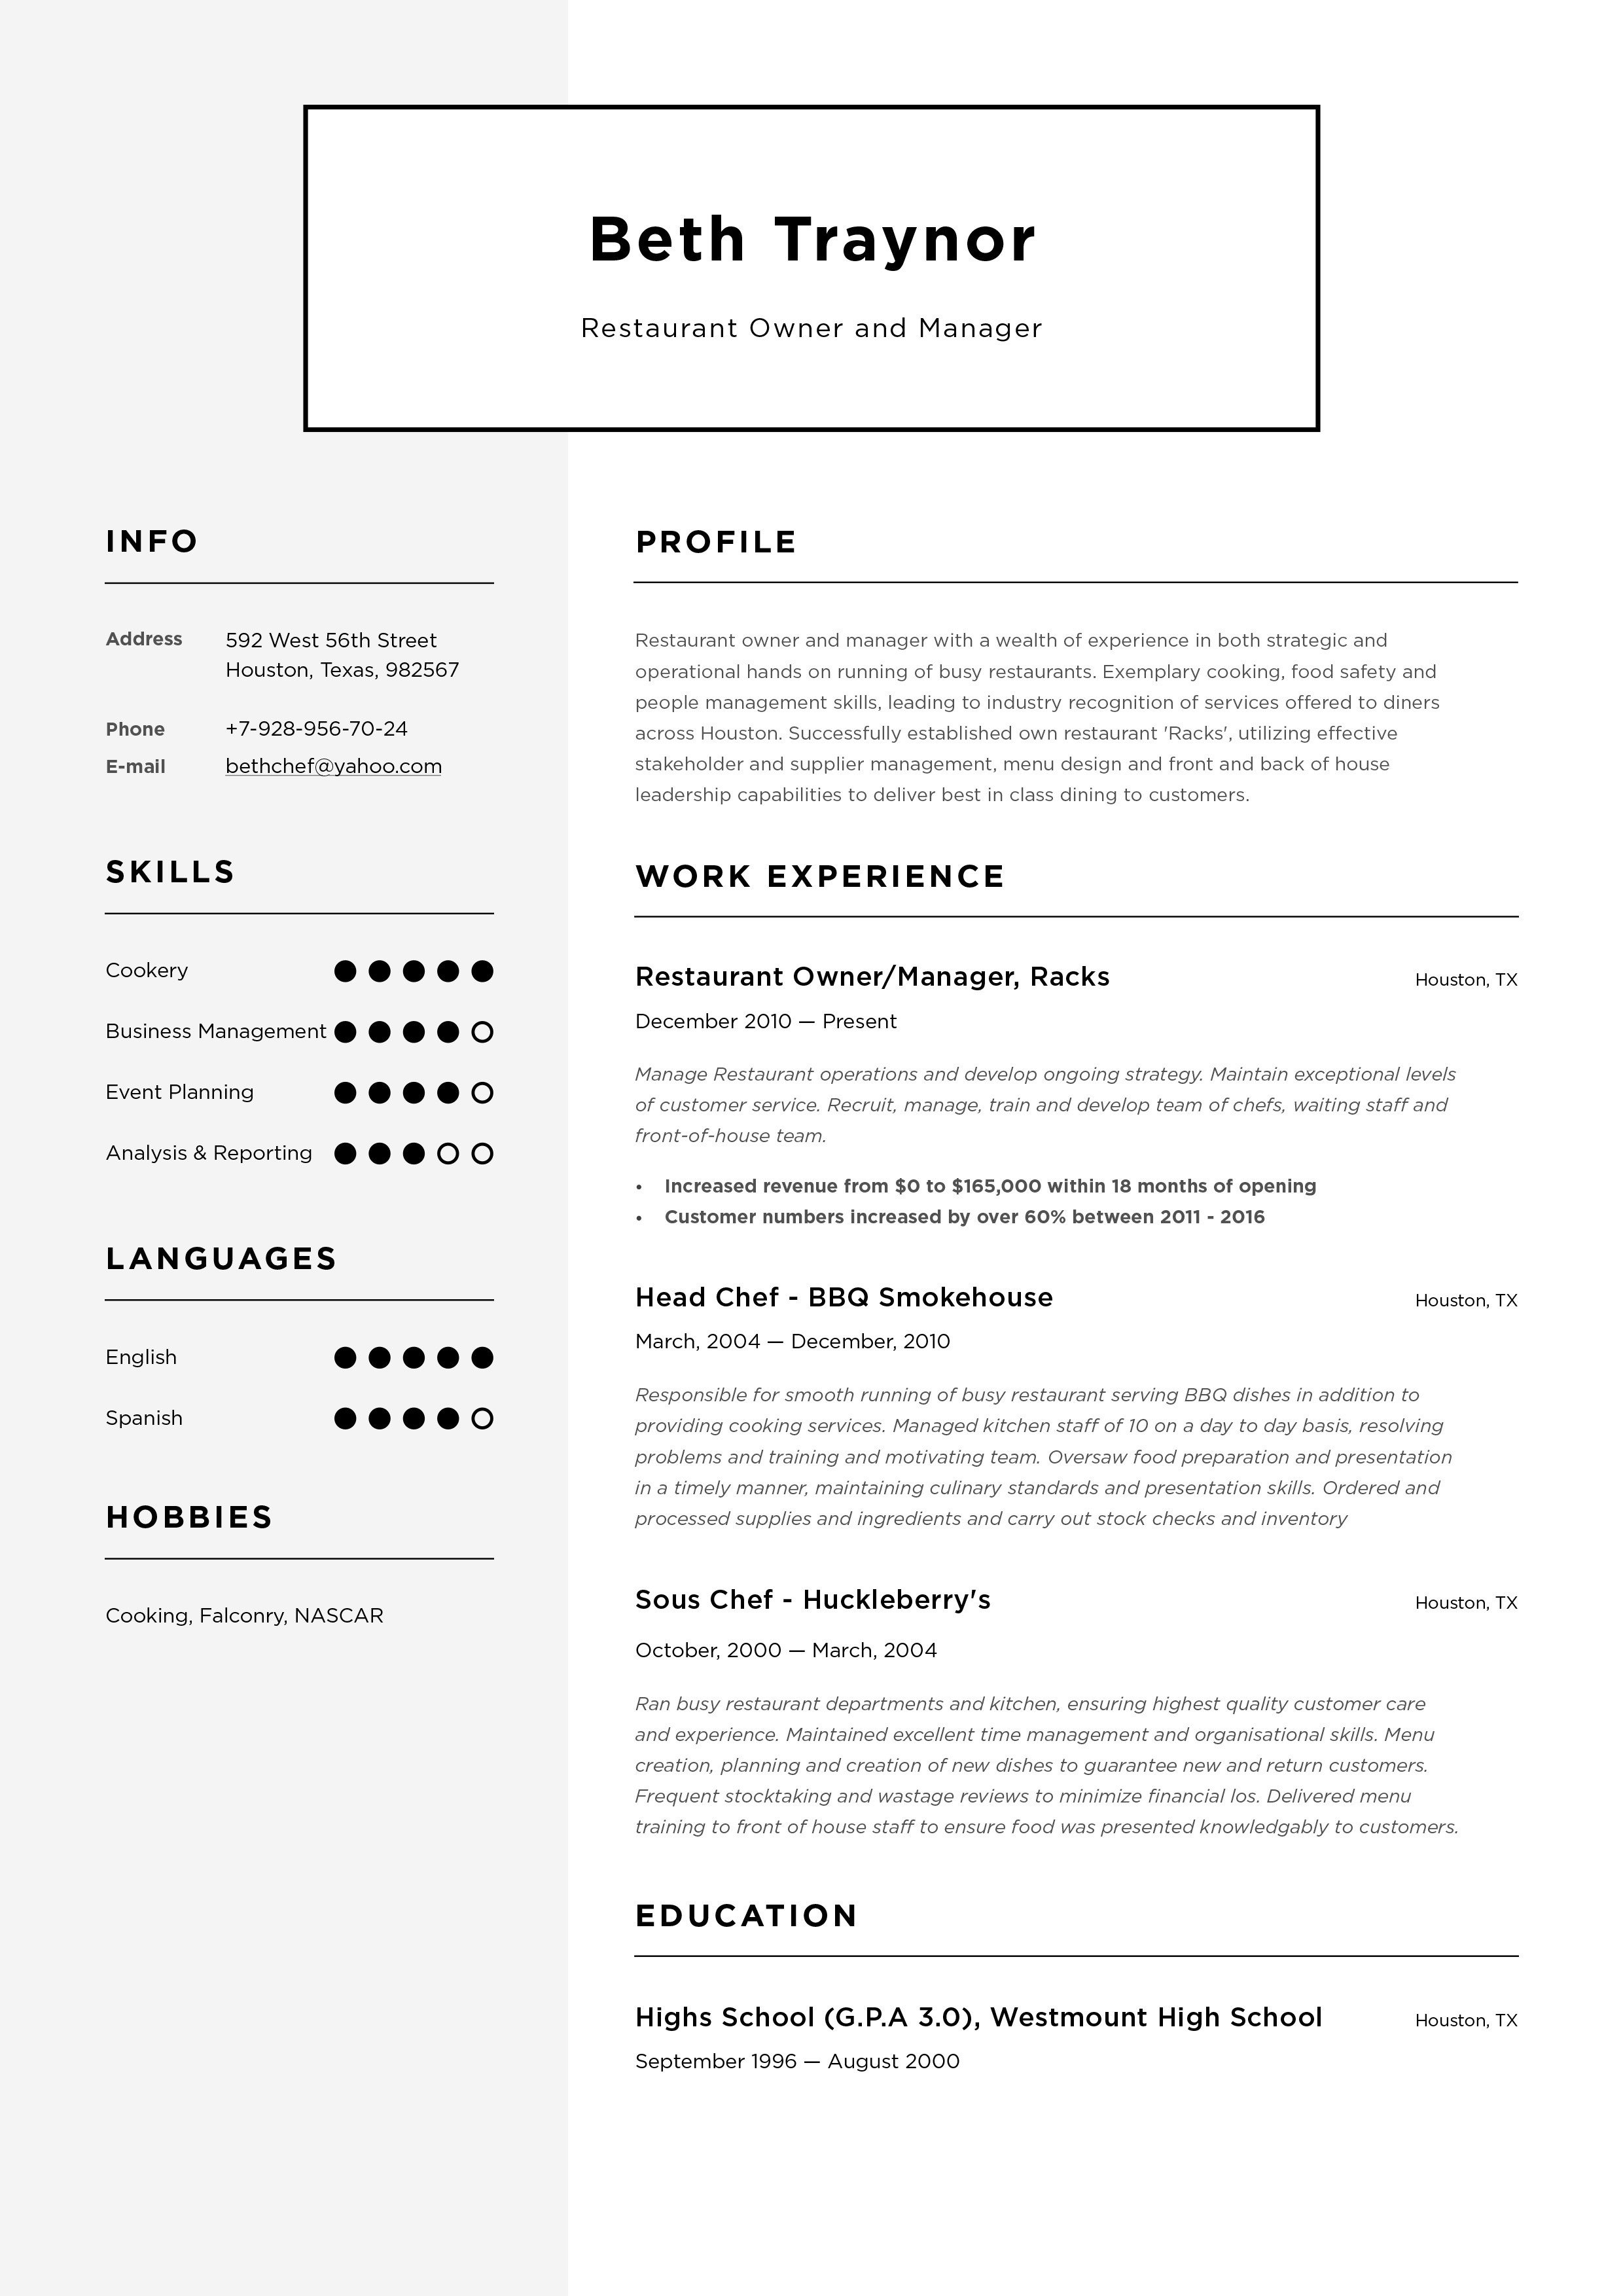 open source resume builder resume io alternatives and similar websites and apps resume io alternatives and similar websites and apps alternativeto net